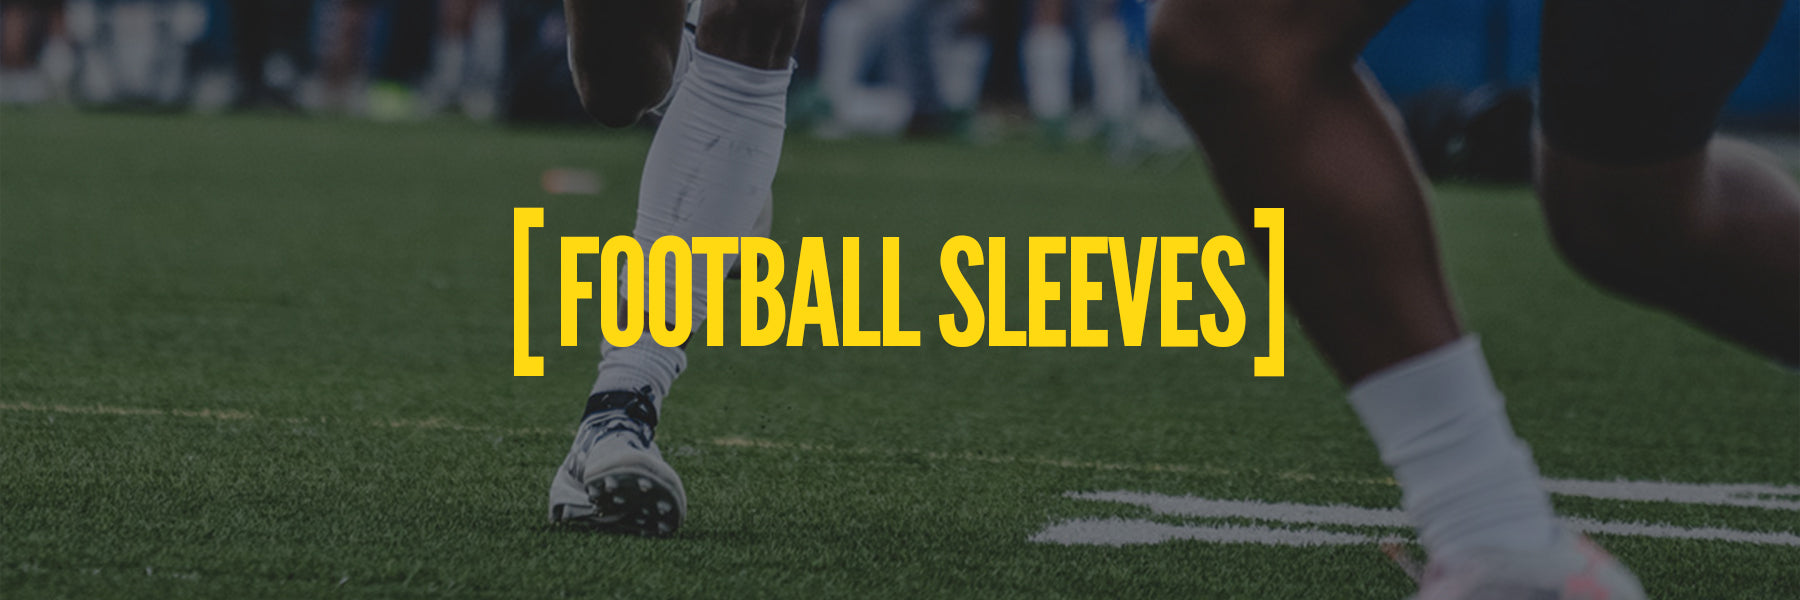 Football Leg Sleeves